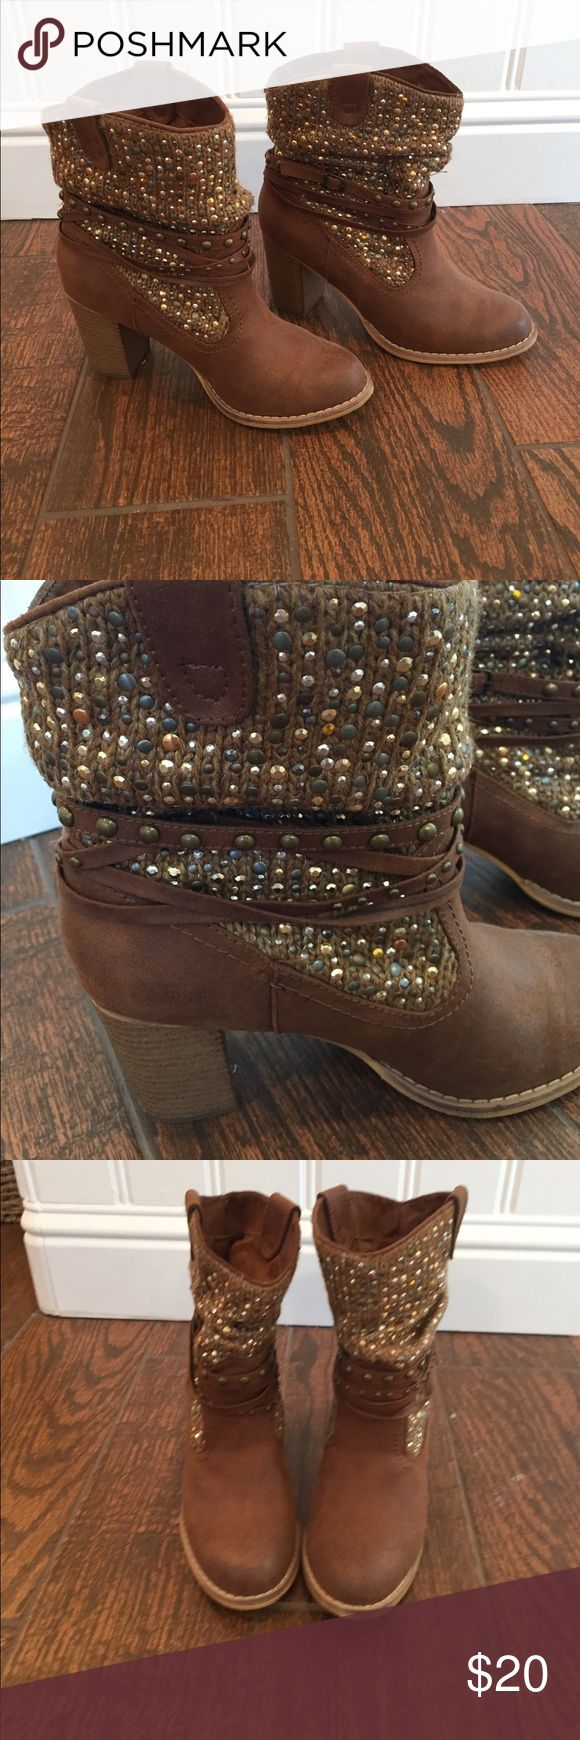 """Brown Rhinestone Cowboy Boots Adorable low cowboy boots. Soft brown suade like material with a fun woven/bedazzled upper      Excellent condition. Only wore a couple of times. Approx 3"""" heel height. Not Rated Shoes Heeled Boots"""